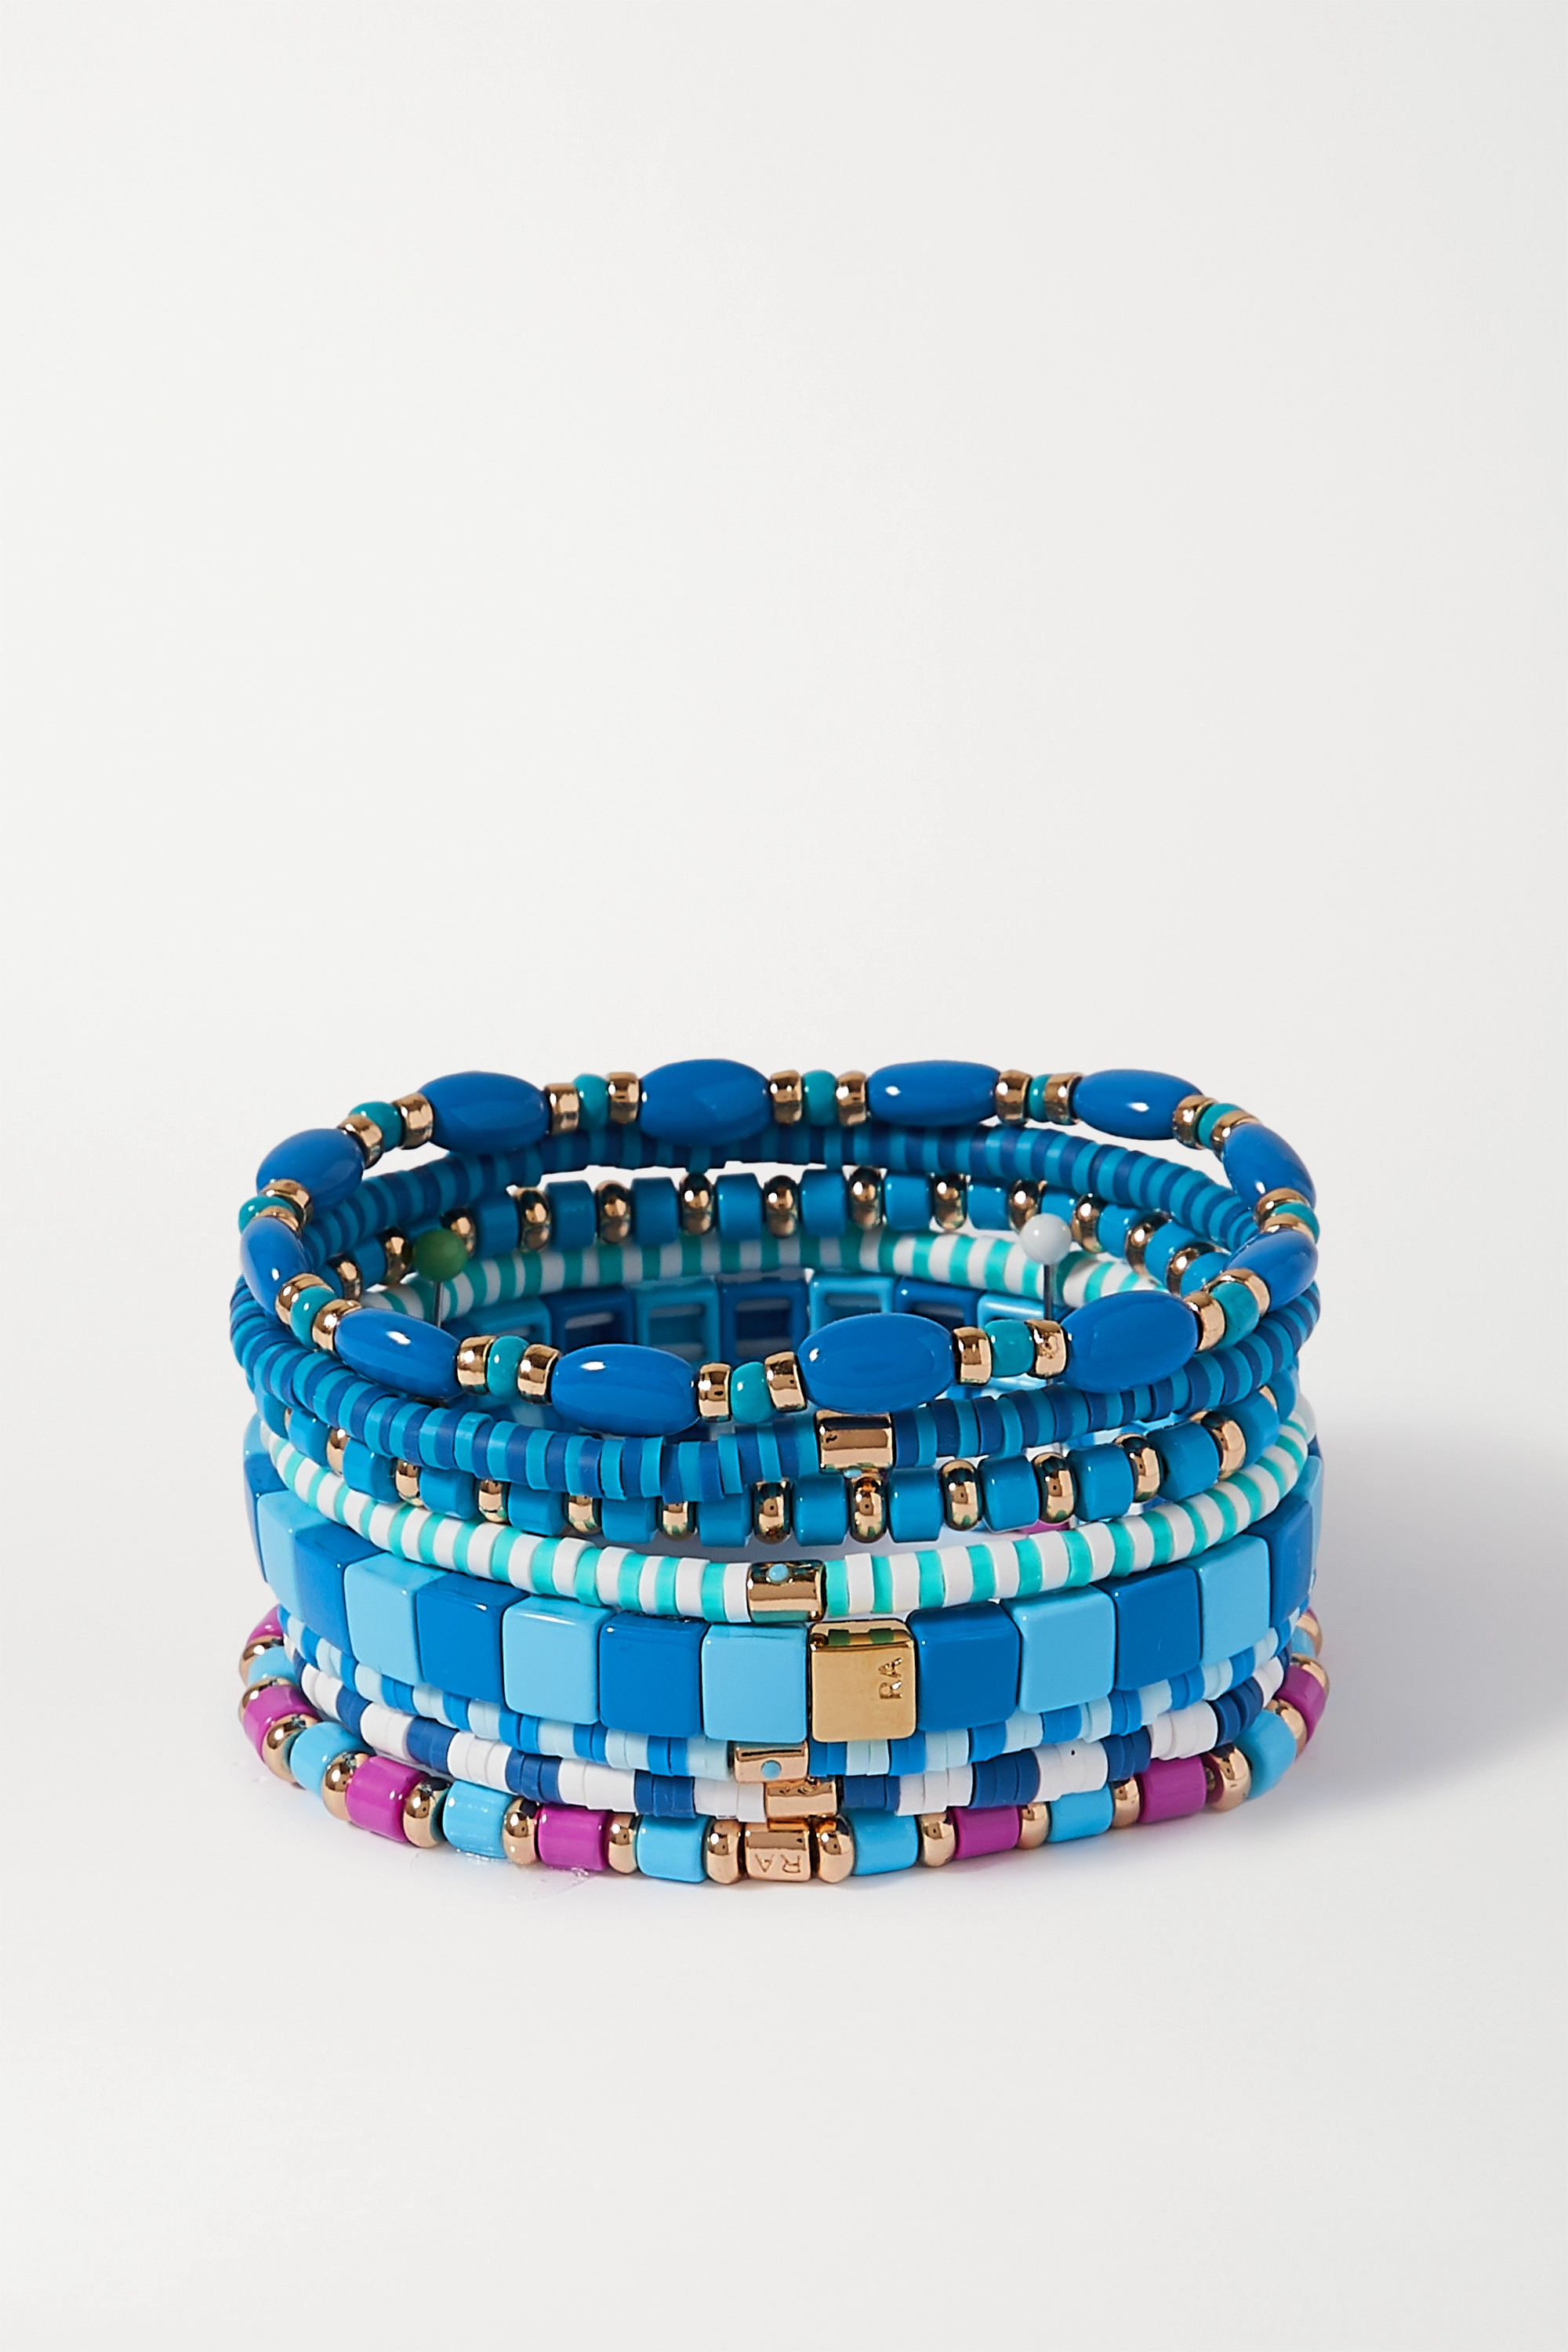 Roxanne Assoulin Colour Therapy set of eight enamel and gold-tone bracelets